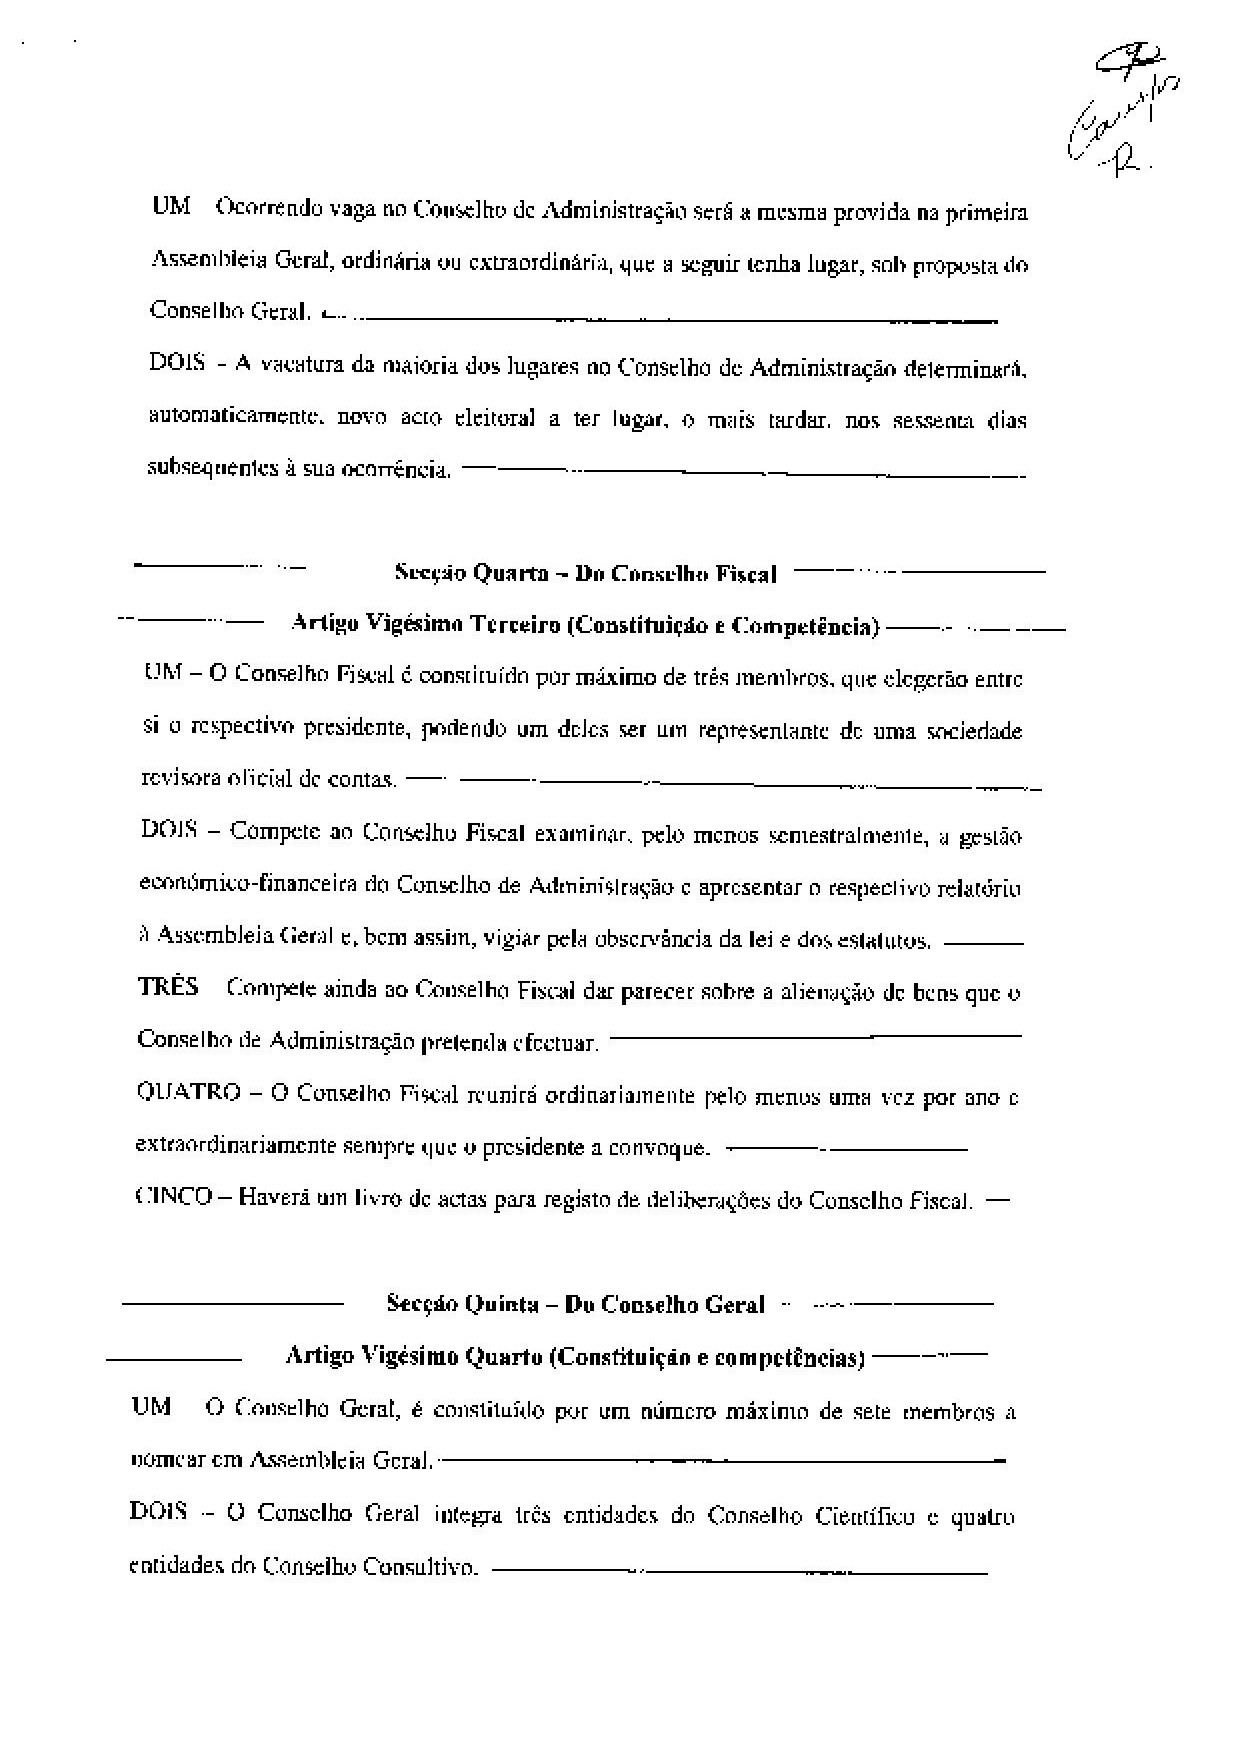 509402267_Associacao_BLC_2a_alteracao (1)-page-016